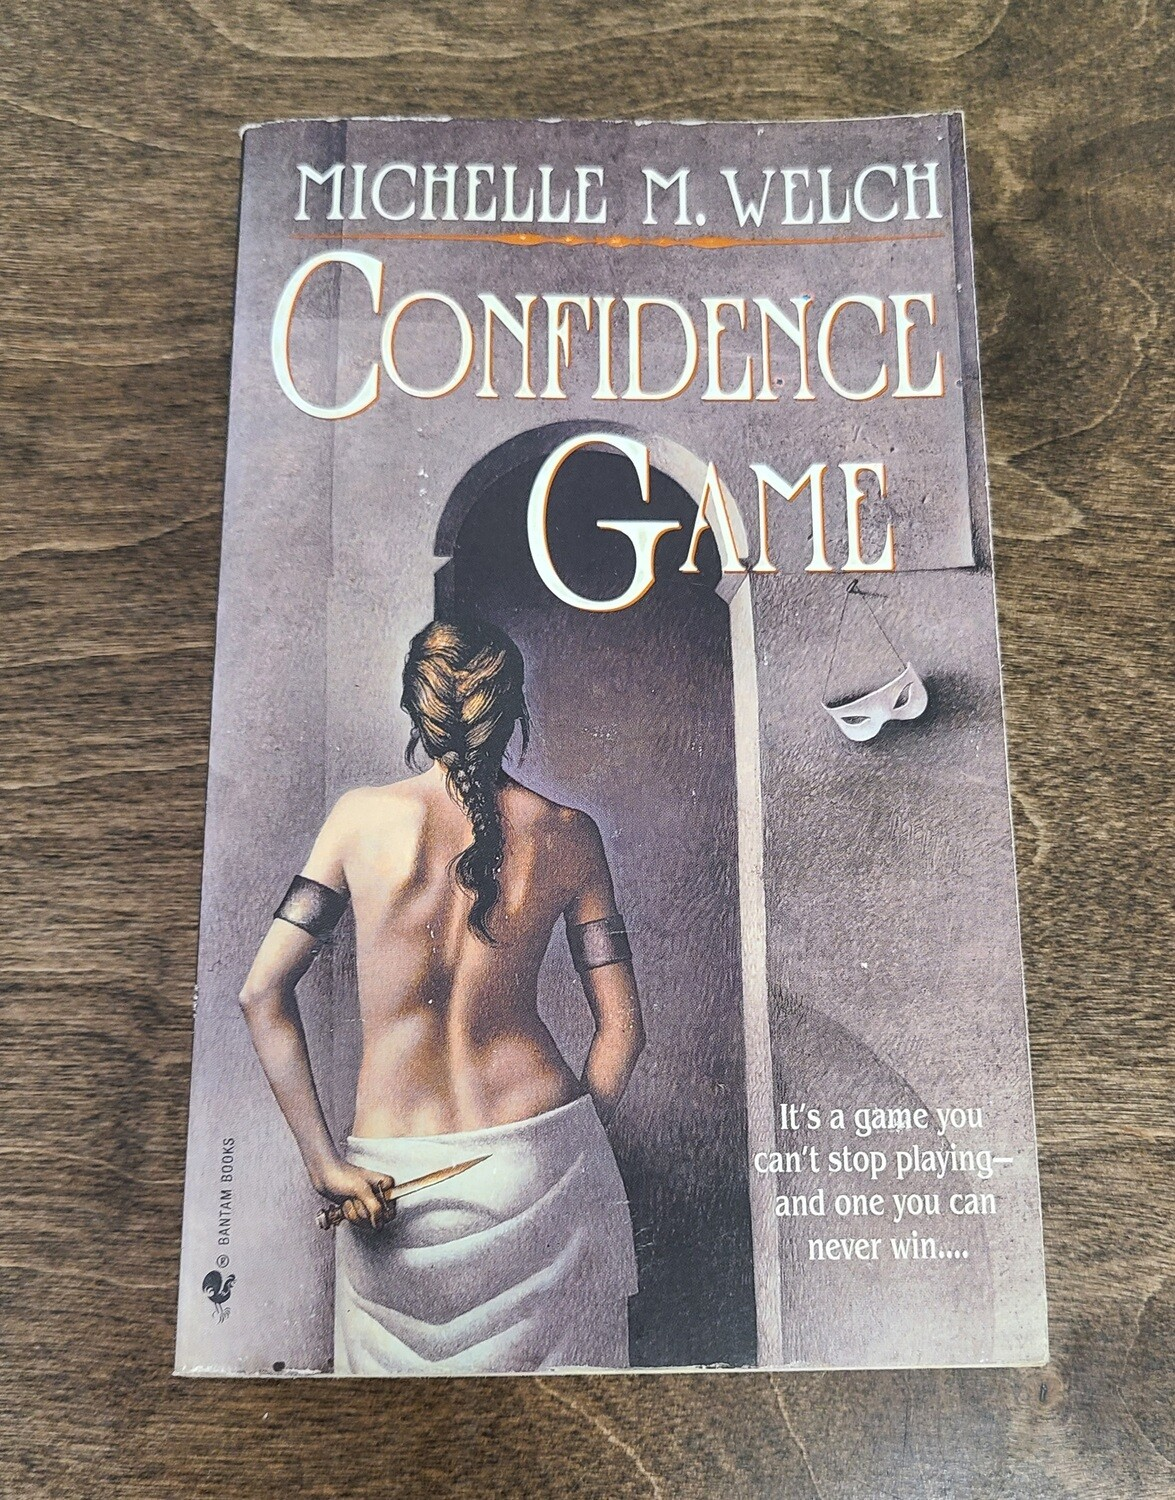 Confidence Game by Michelle M. Welch